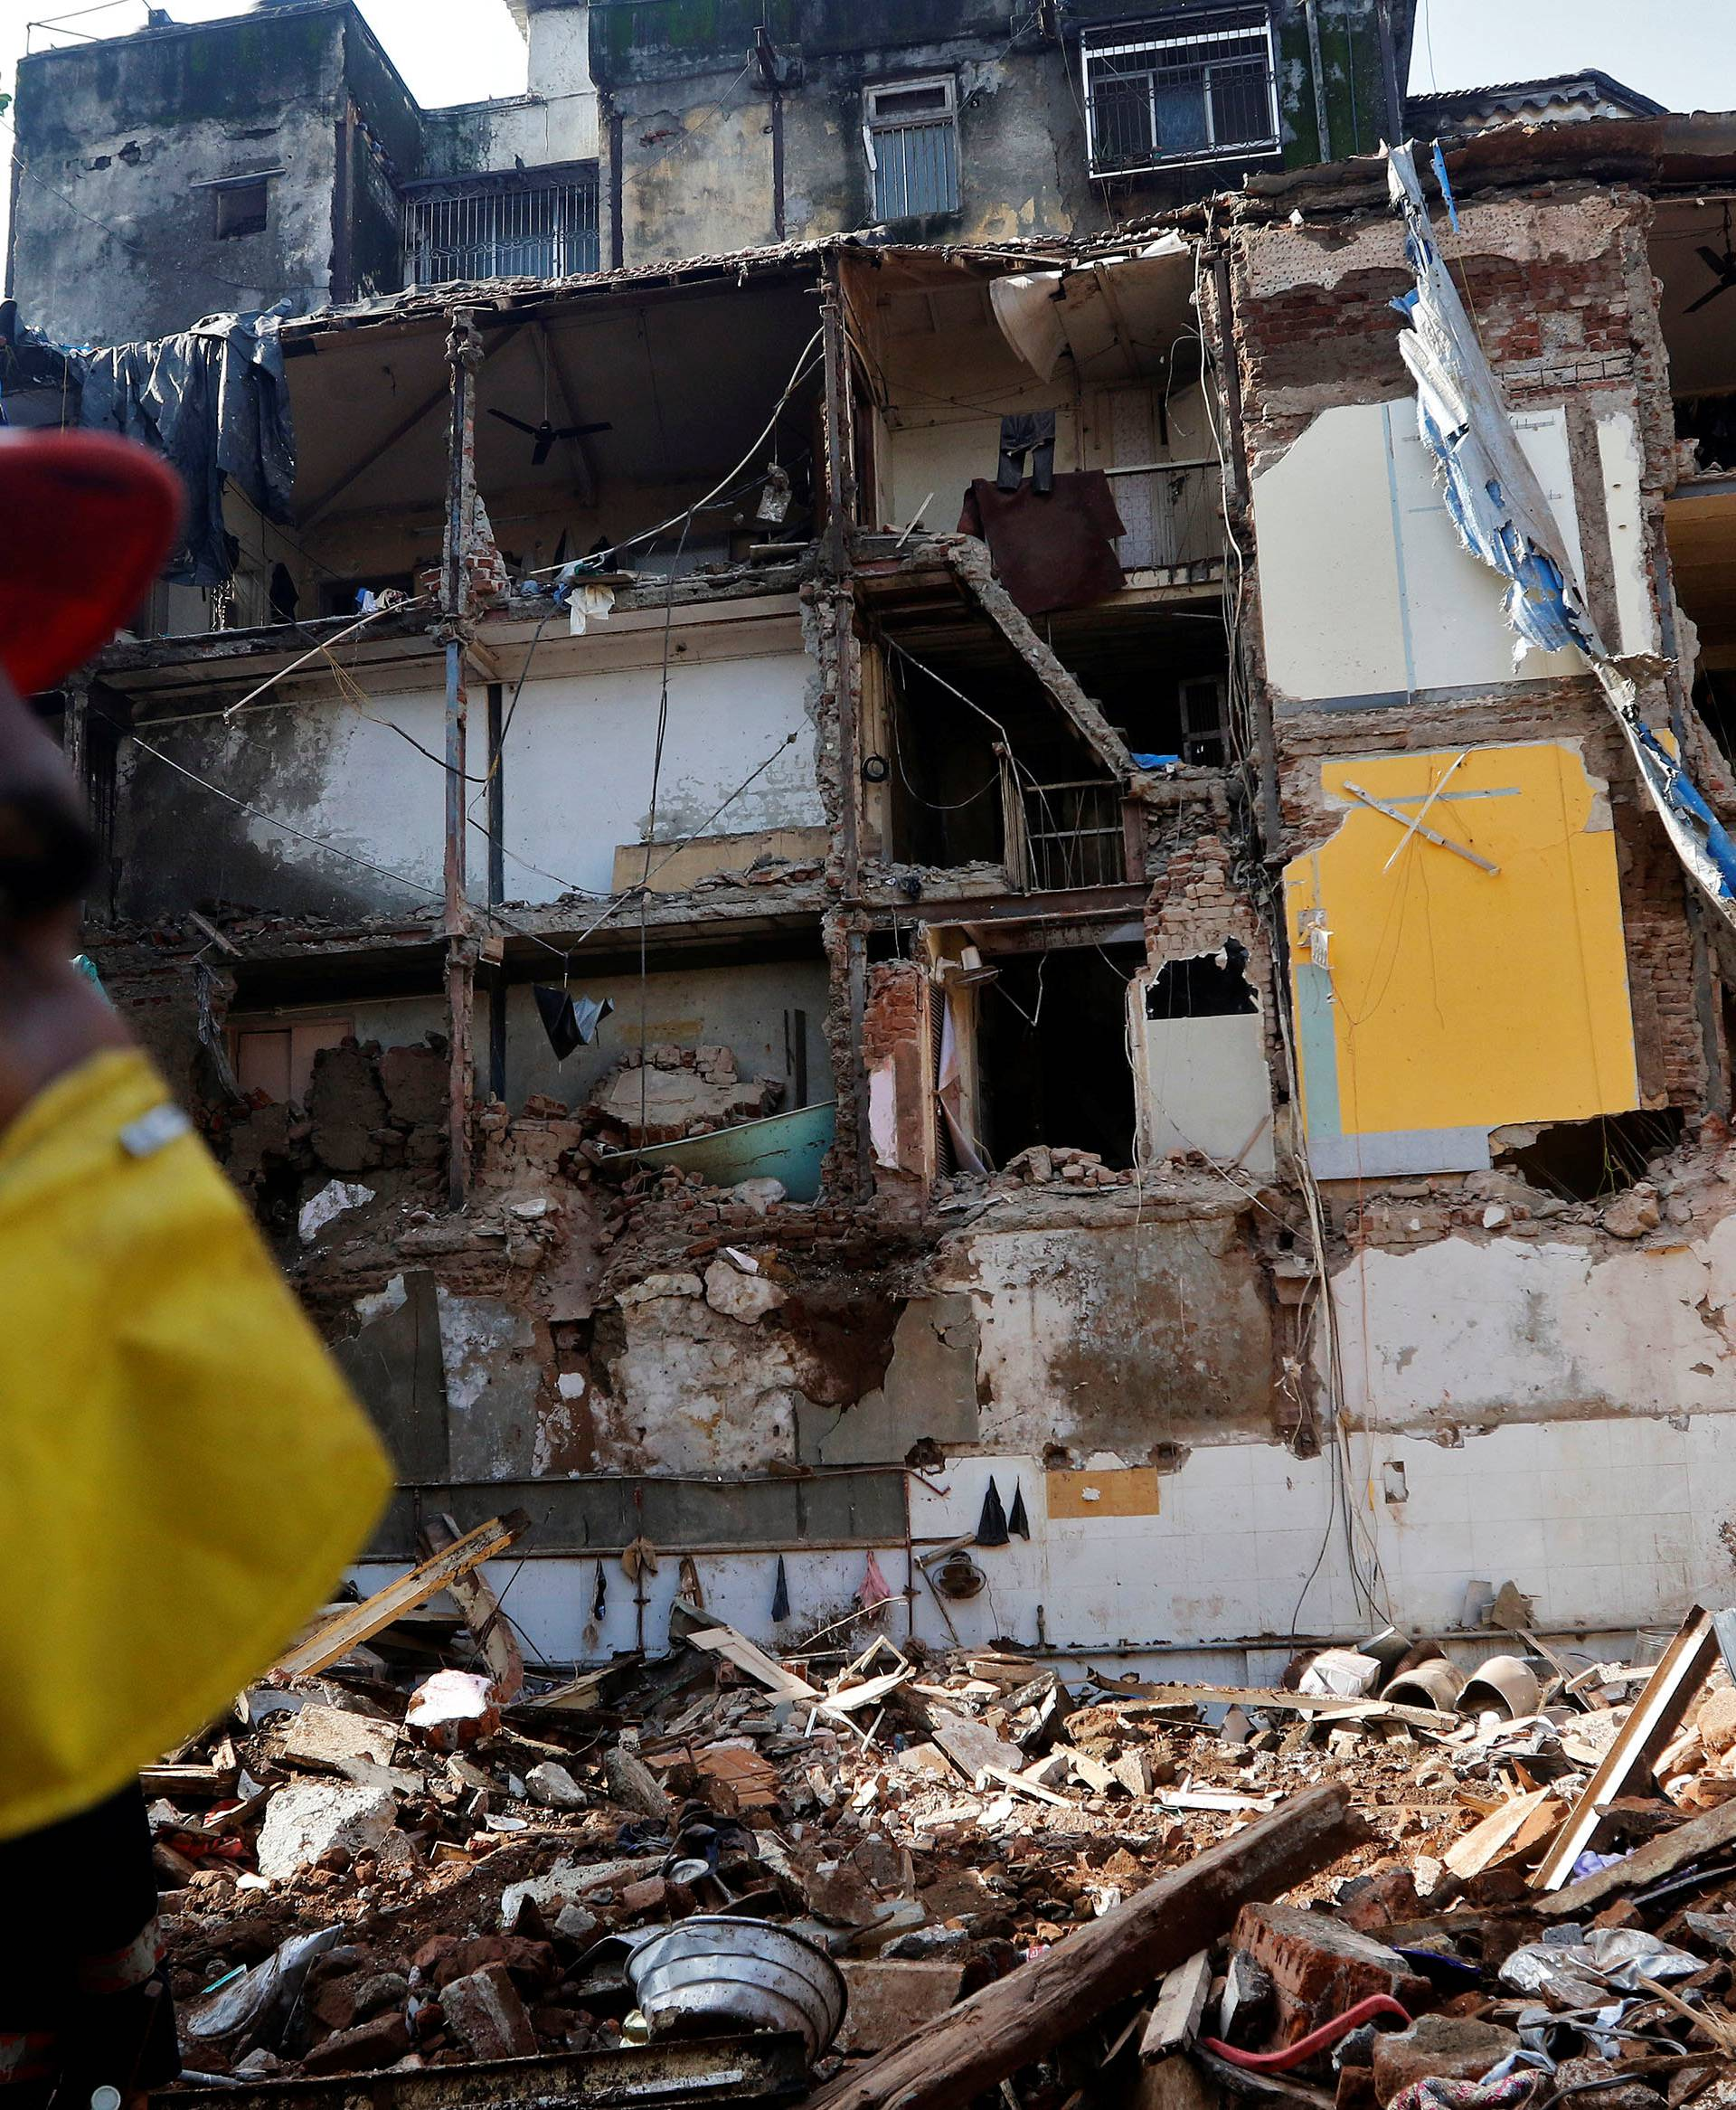 A rescue worker searches for survivors at the site of a collapsed building in Mumbai